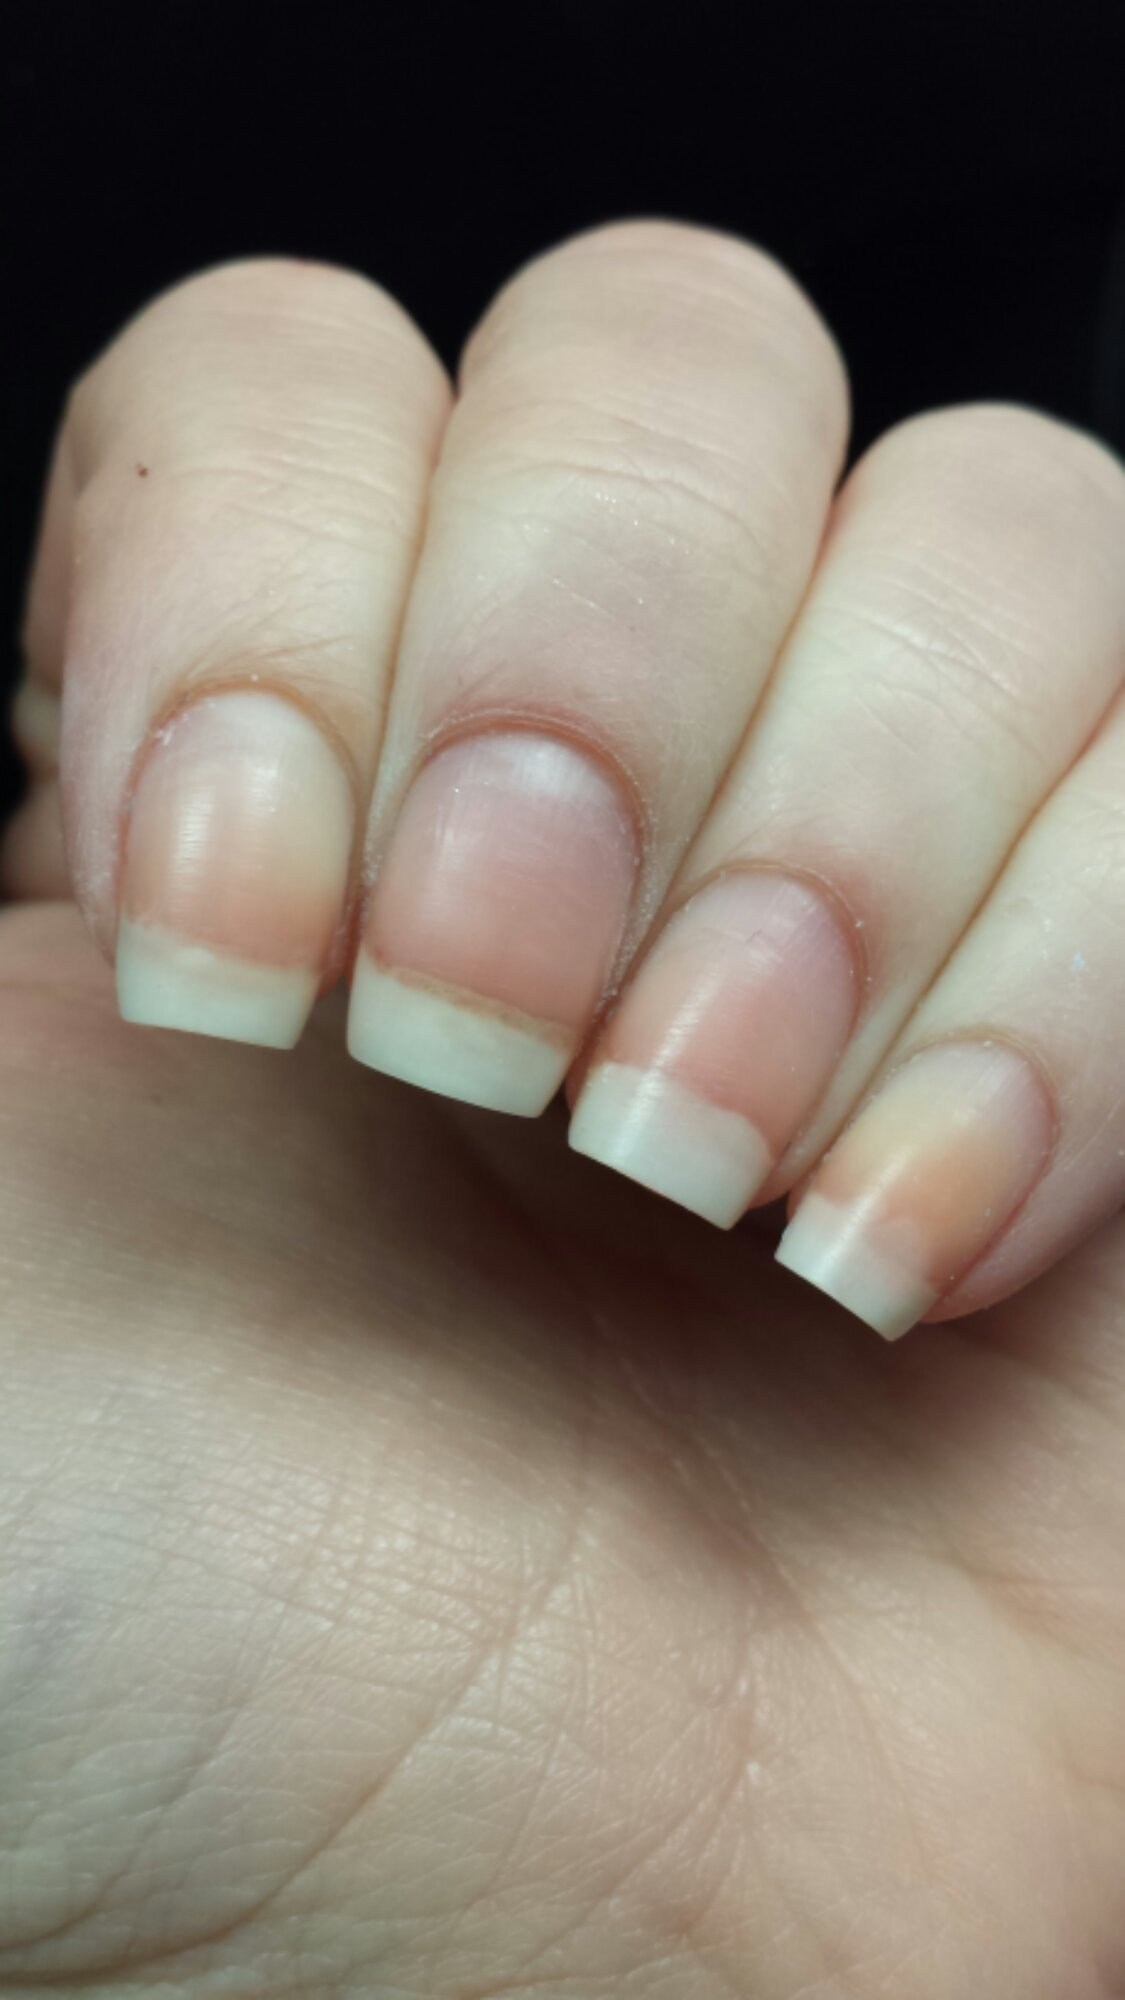 how to keep nails from splitting and peeling